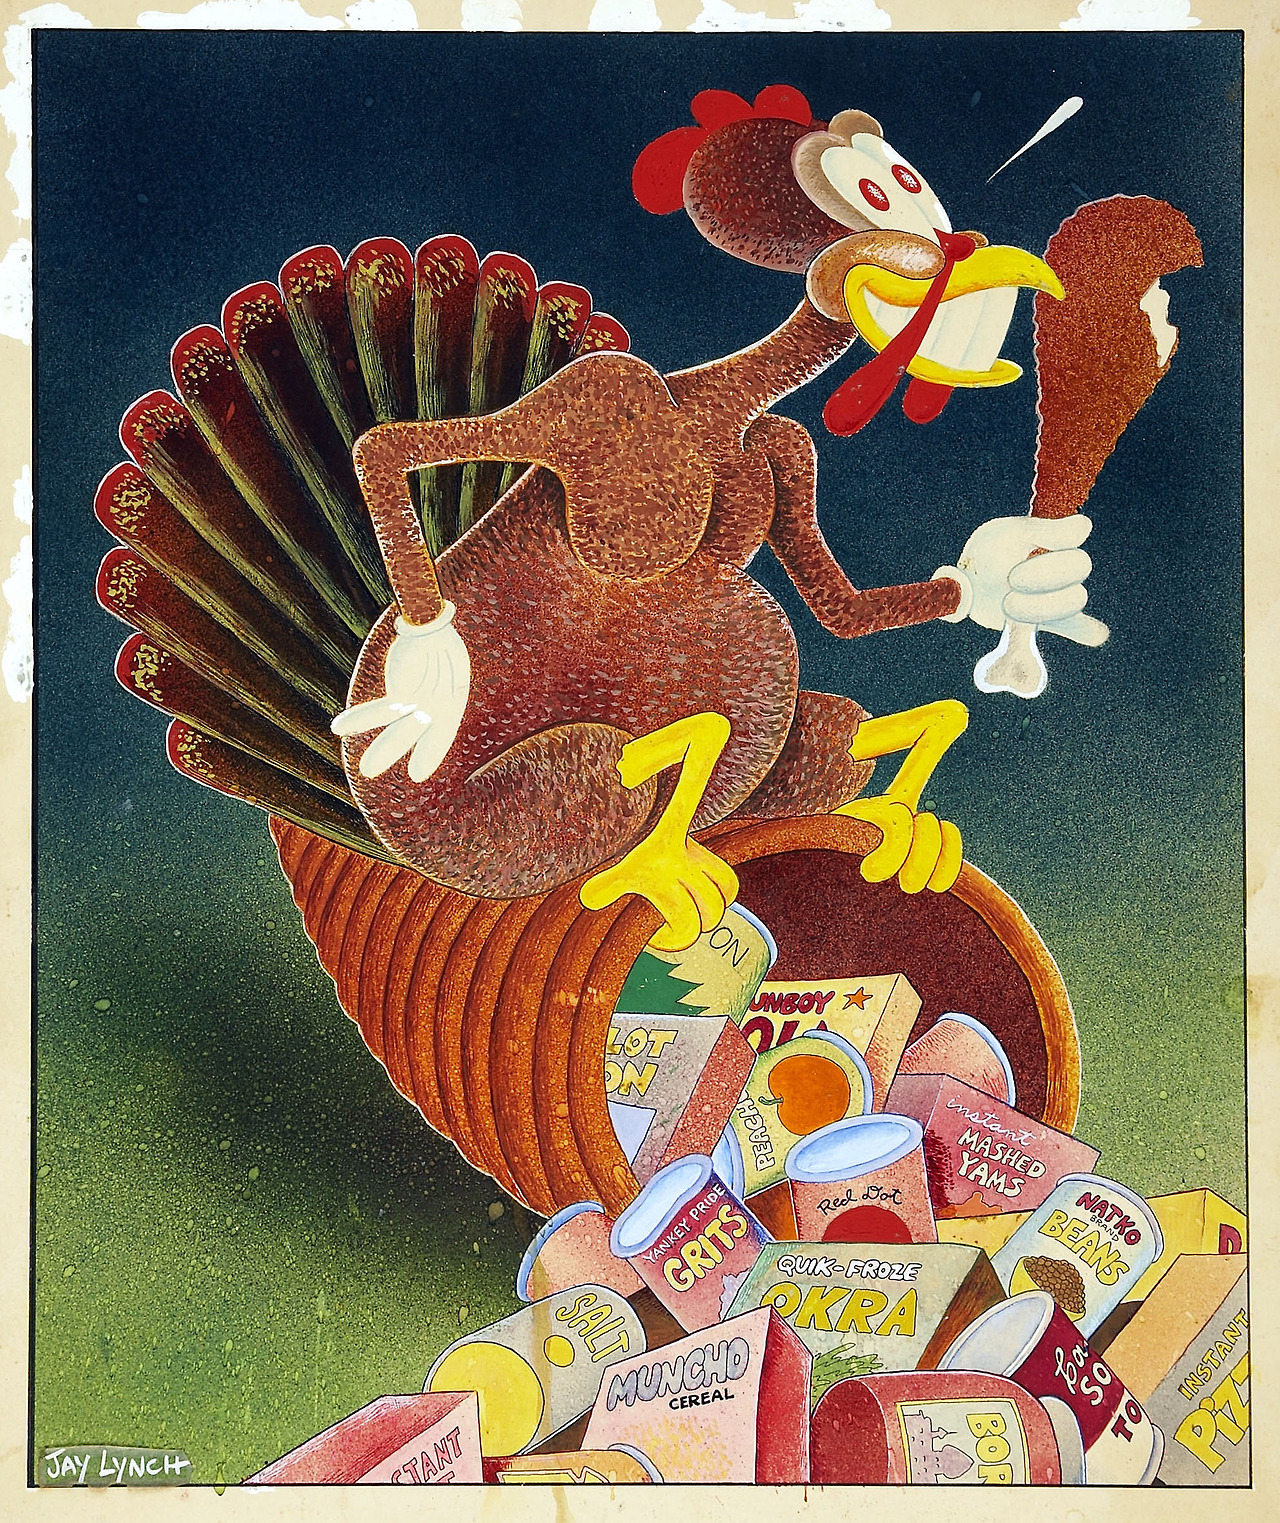 thebristolboard: Midwest Magazine Thanksgiving illustration by underground comix legend, Jay Lynch, 1972.